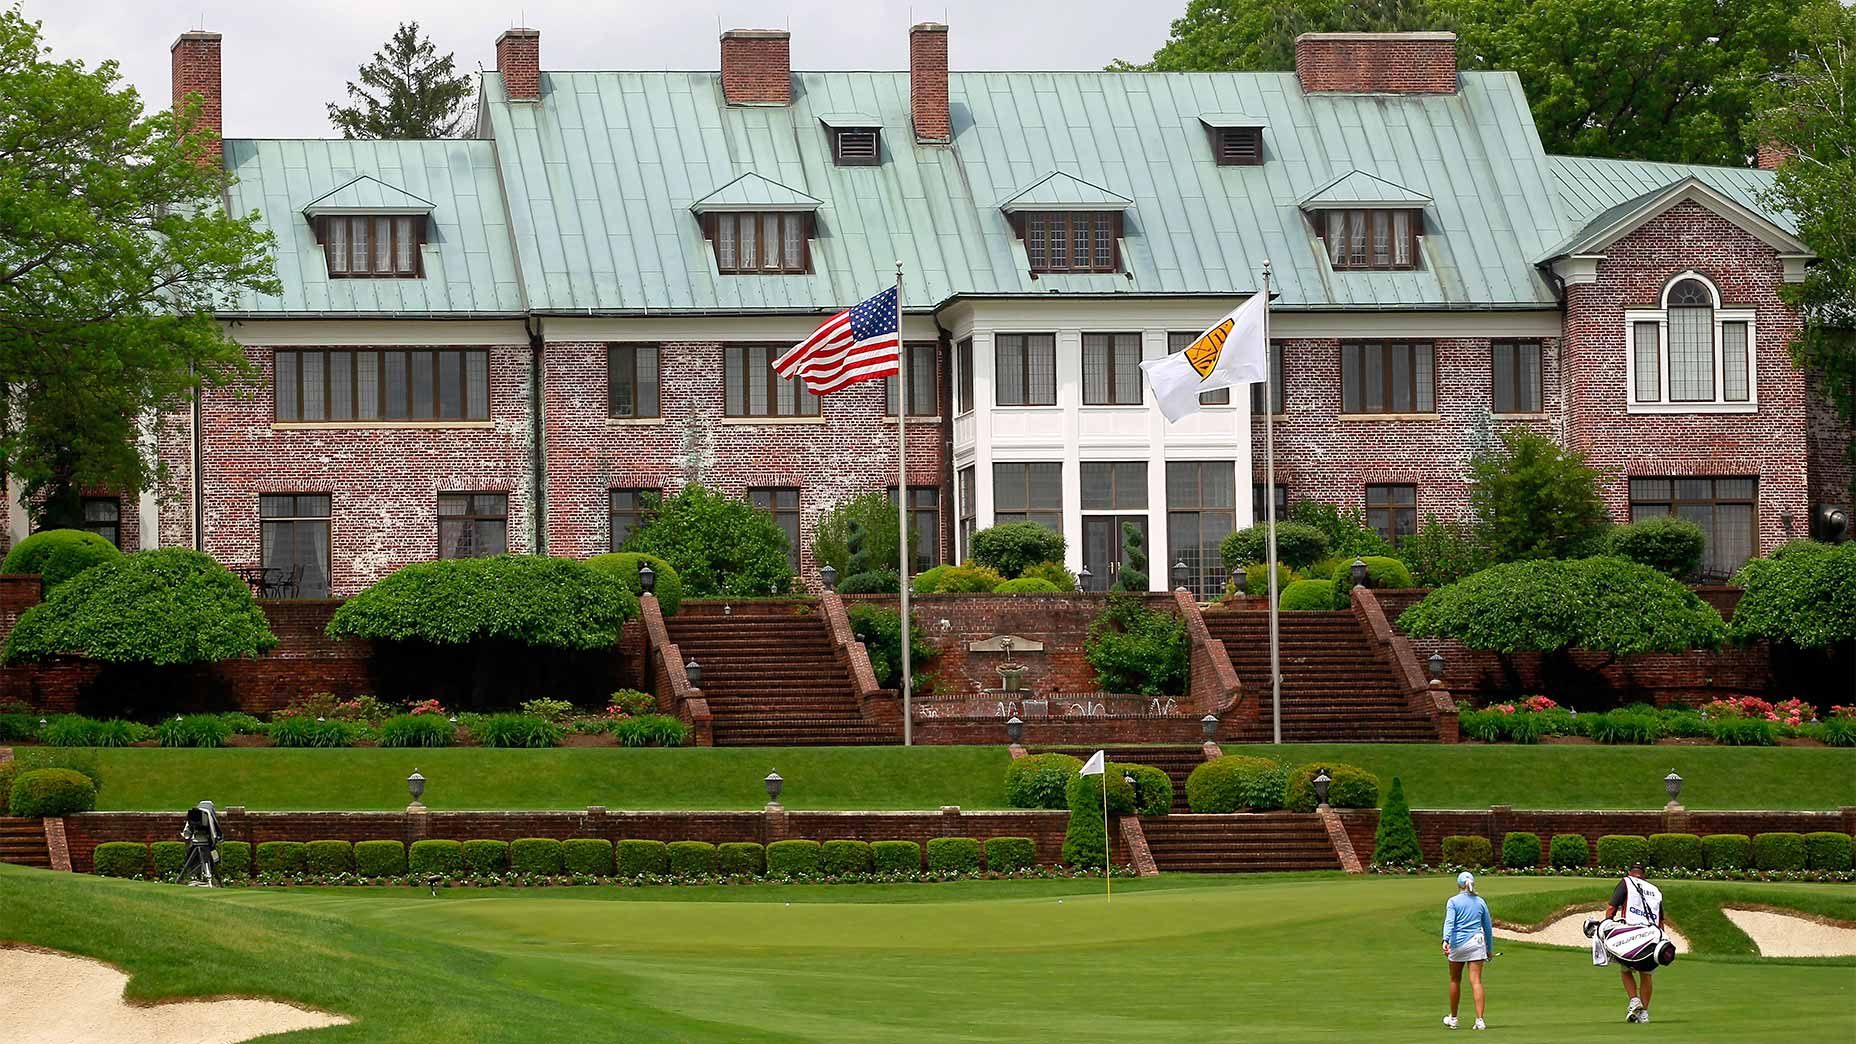 The 9th green and clubhouse at Hamilton Farm Golf Club in Gladstone, N.J.